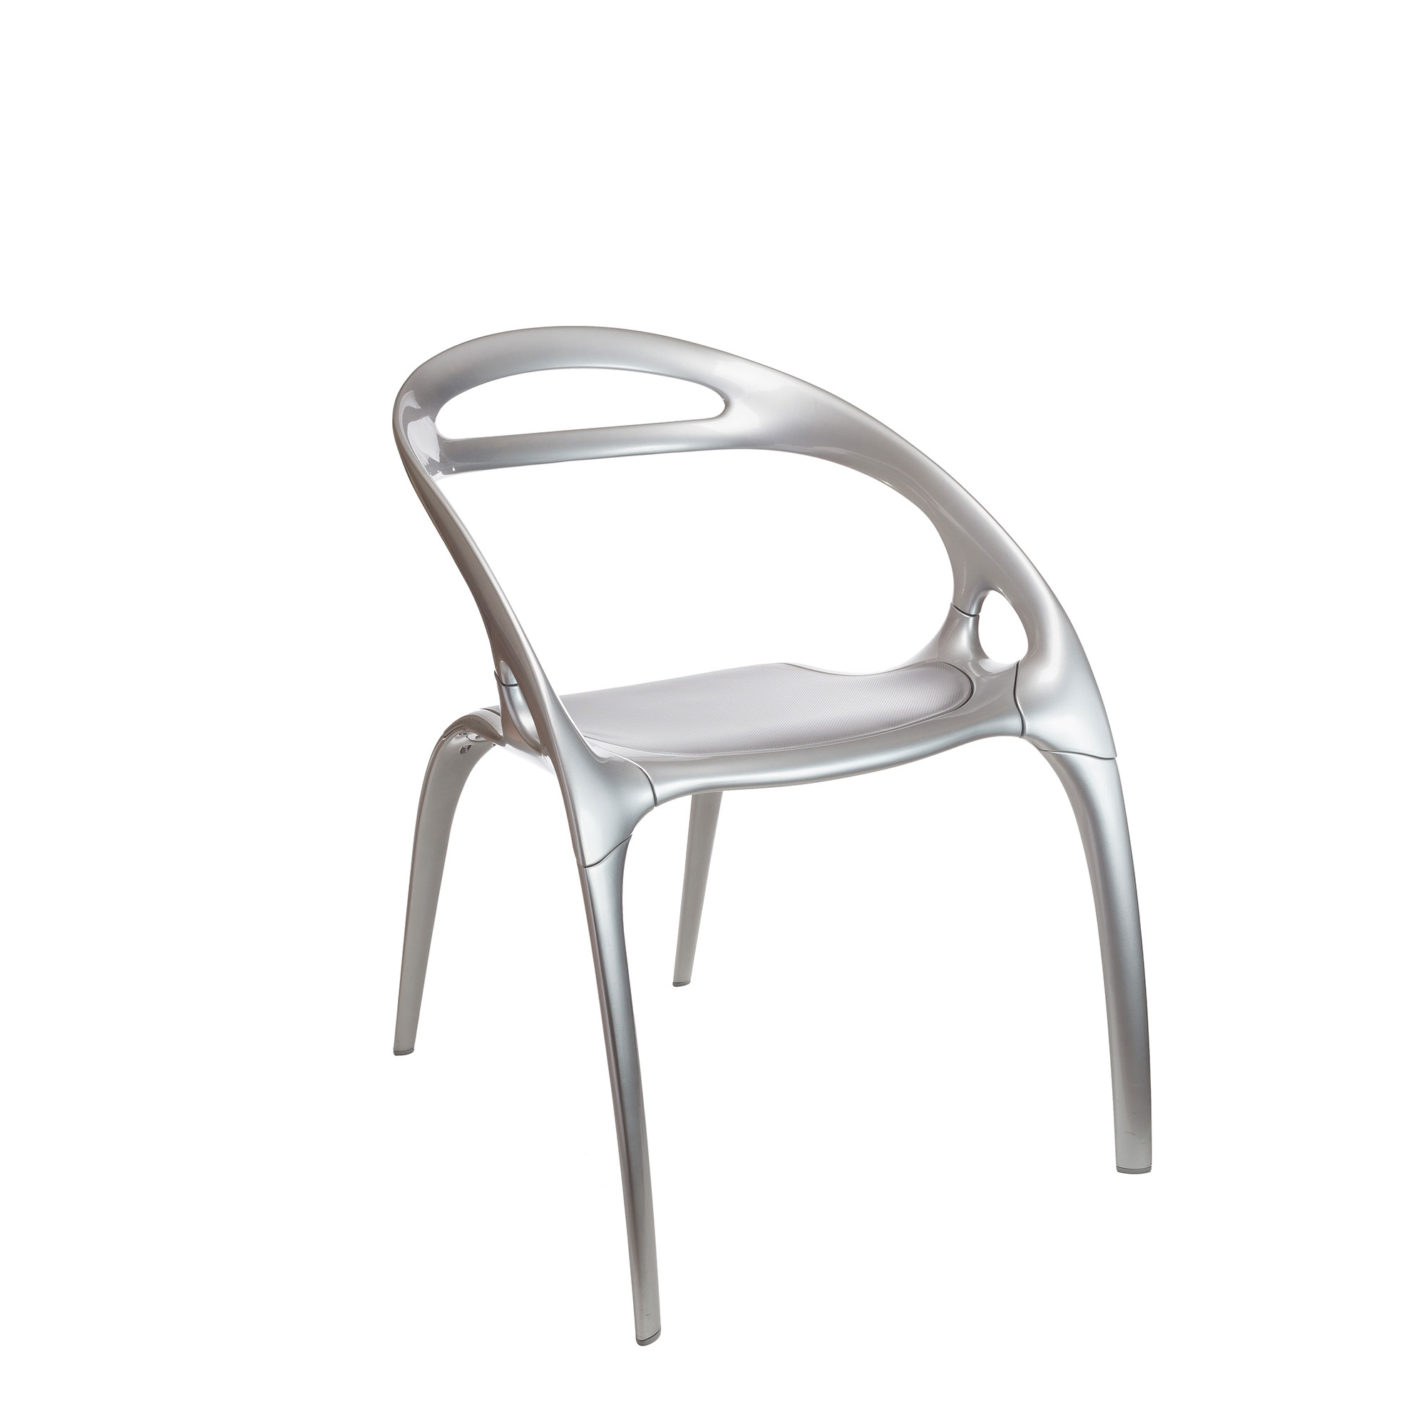 Metallic chair. Back and arms are made of a single swoop of metal above the seat and four slender swooping legs below.